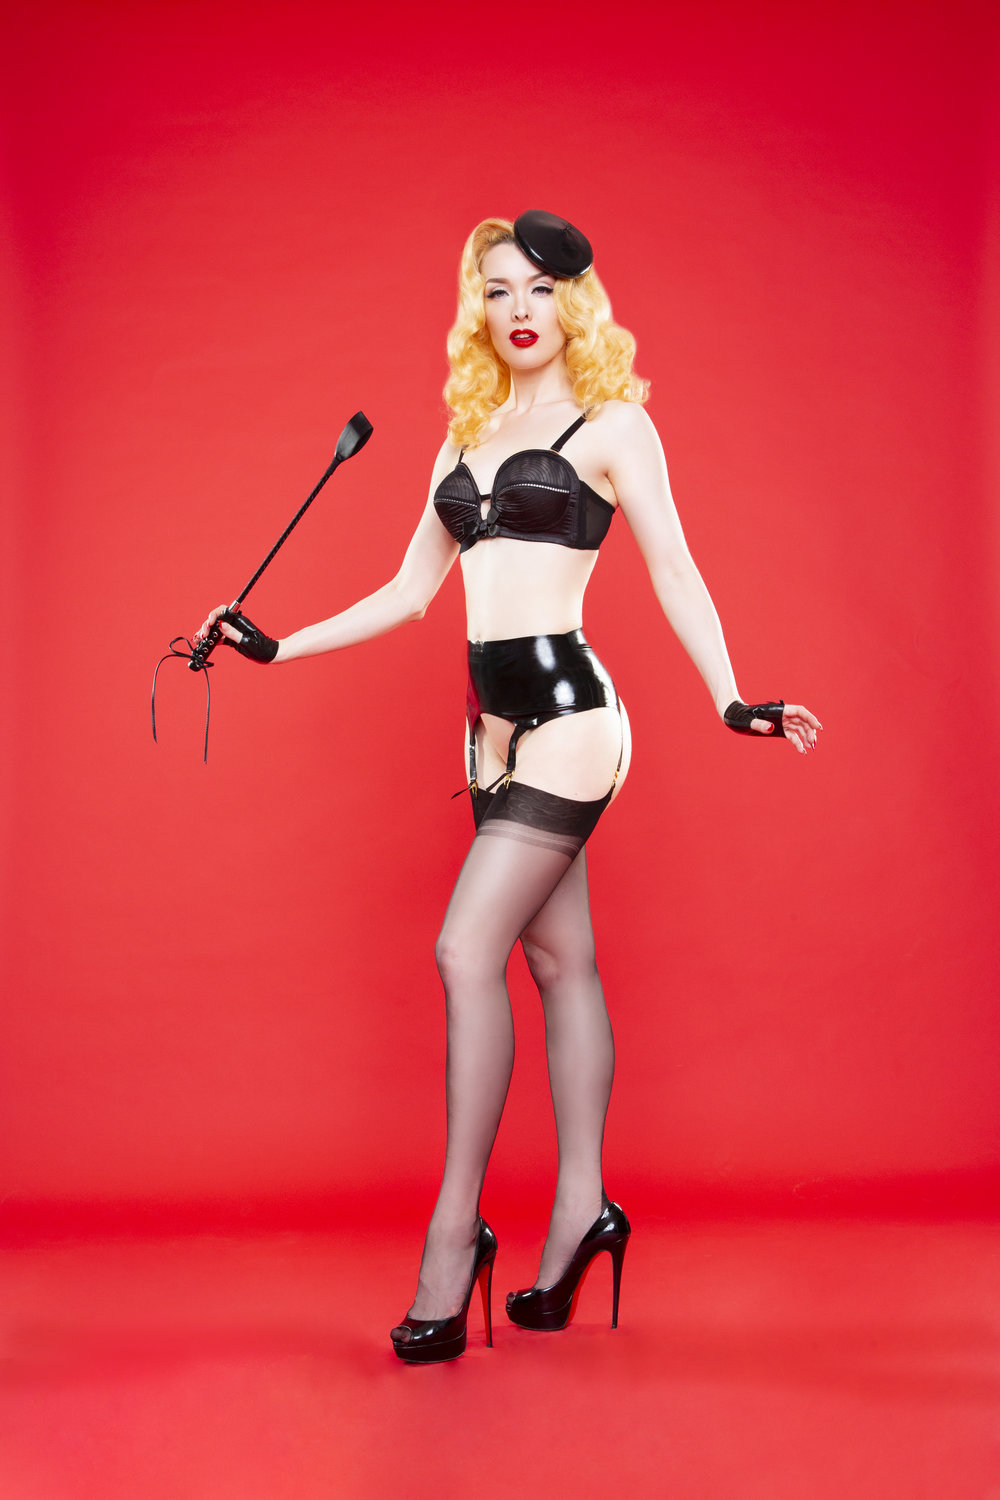 The Lace Up Riding Crop